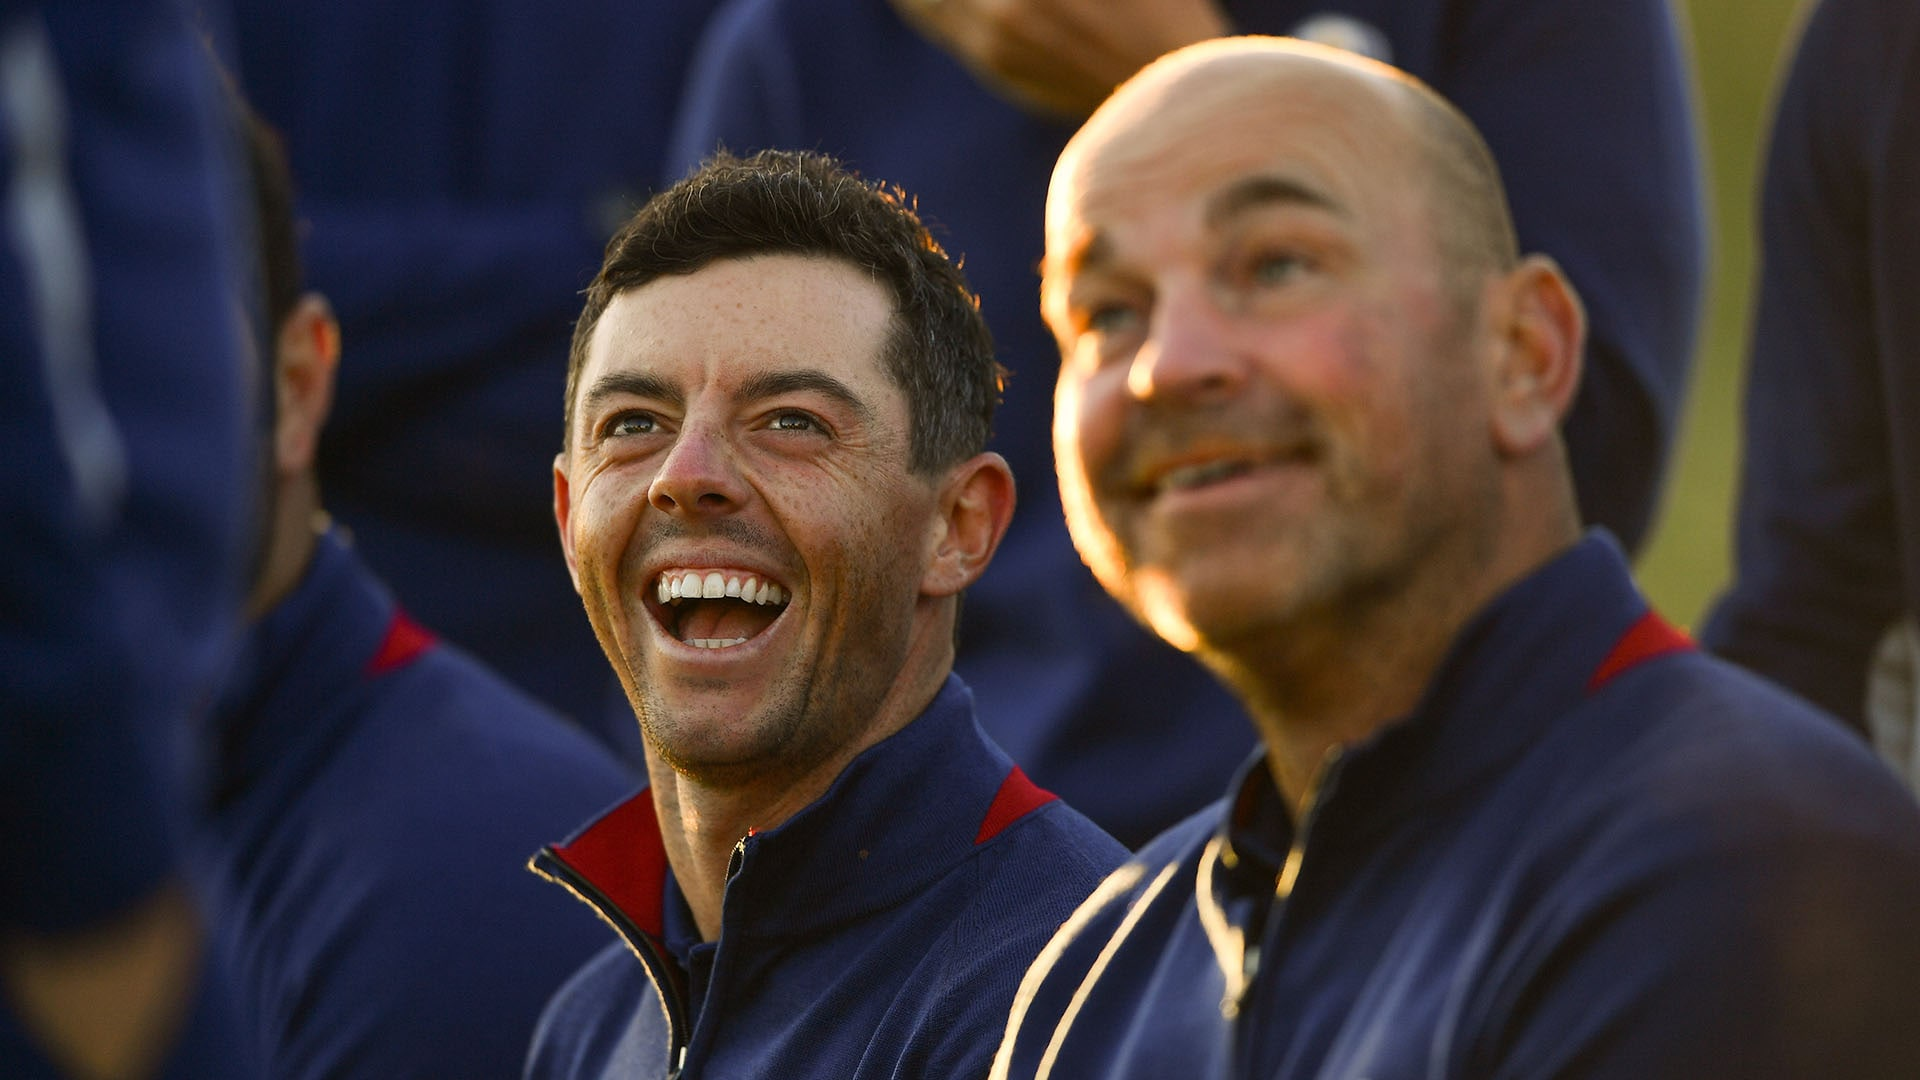 Rory McIlroy and Thomas Bjorn